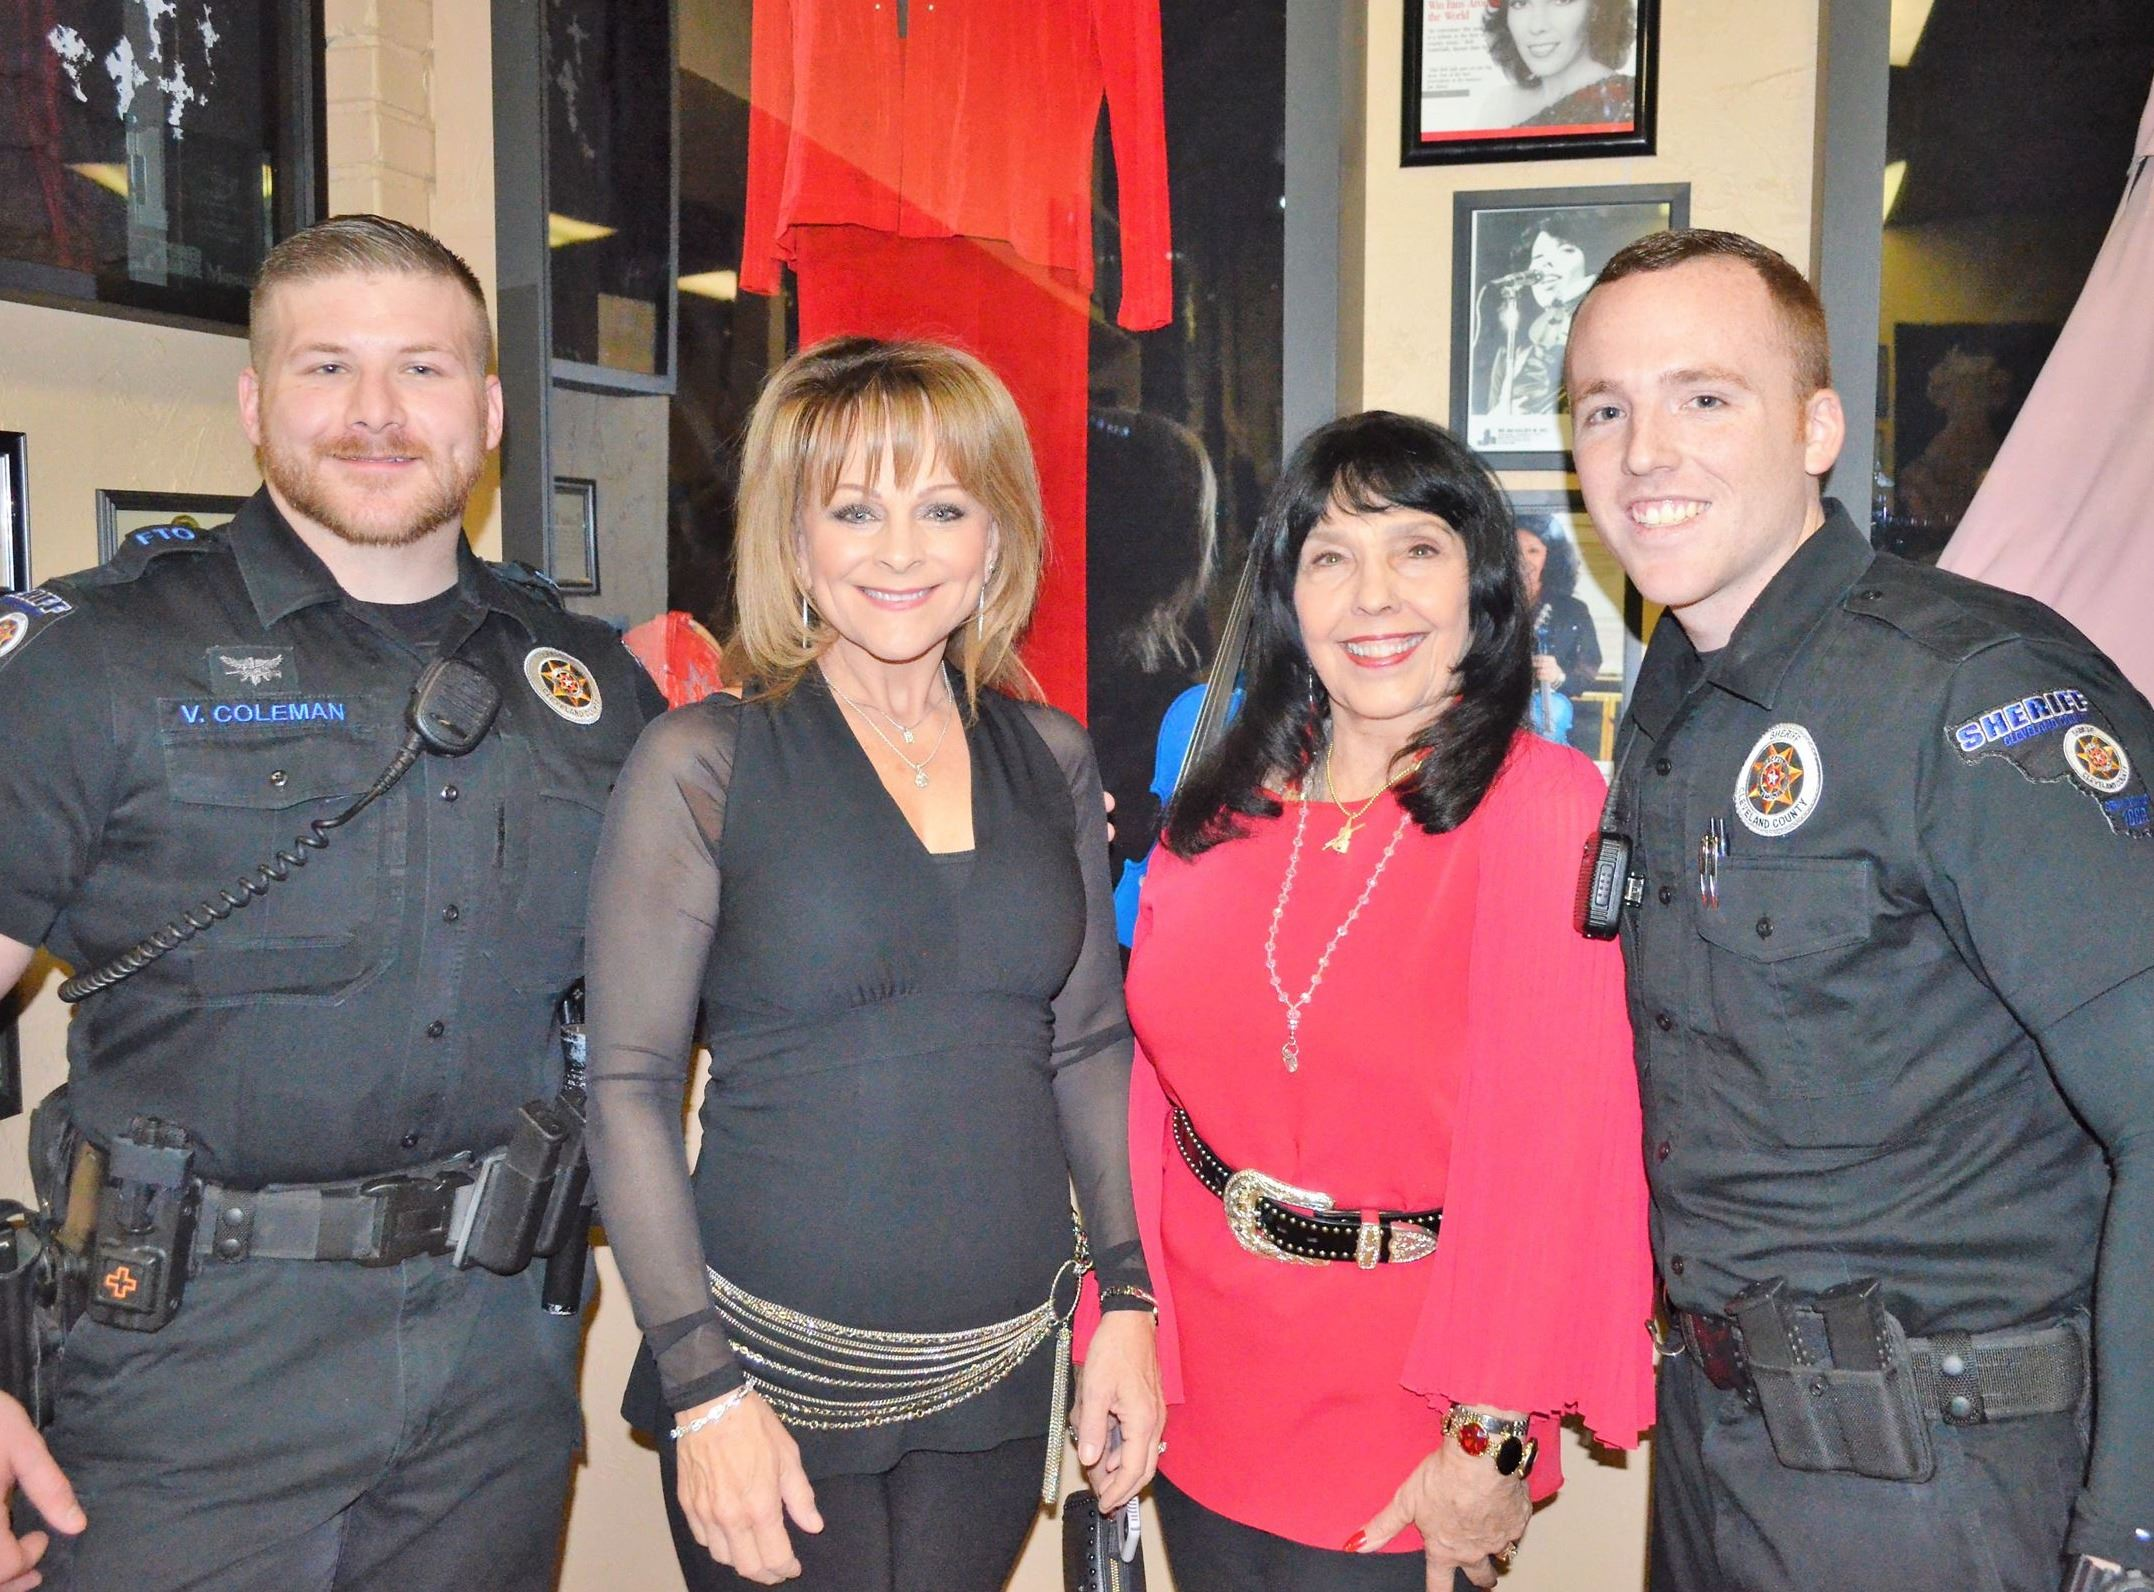 Deputies attend meet and greet for women musicians